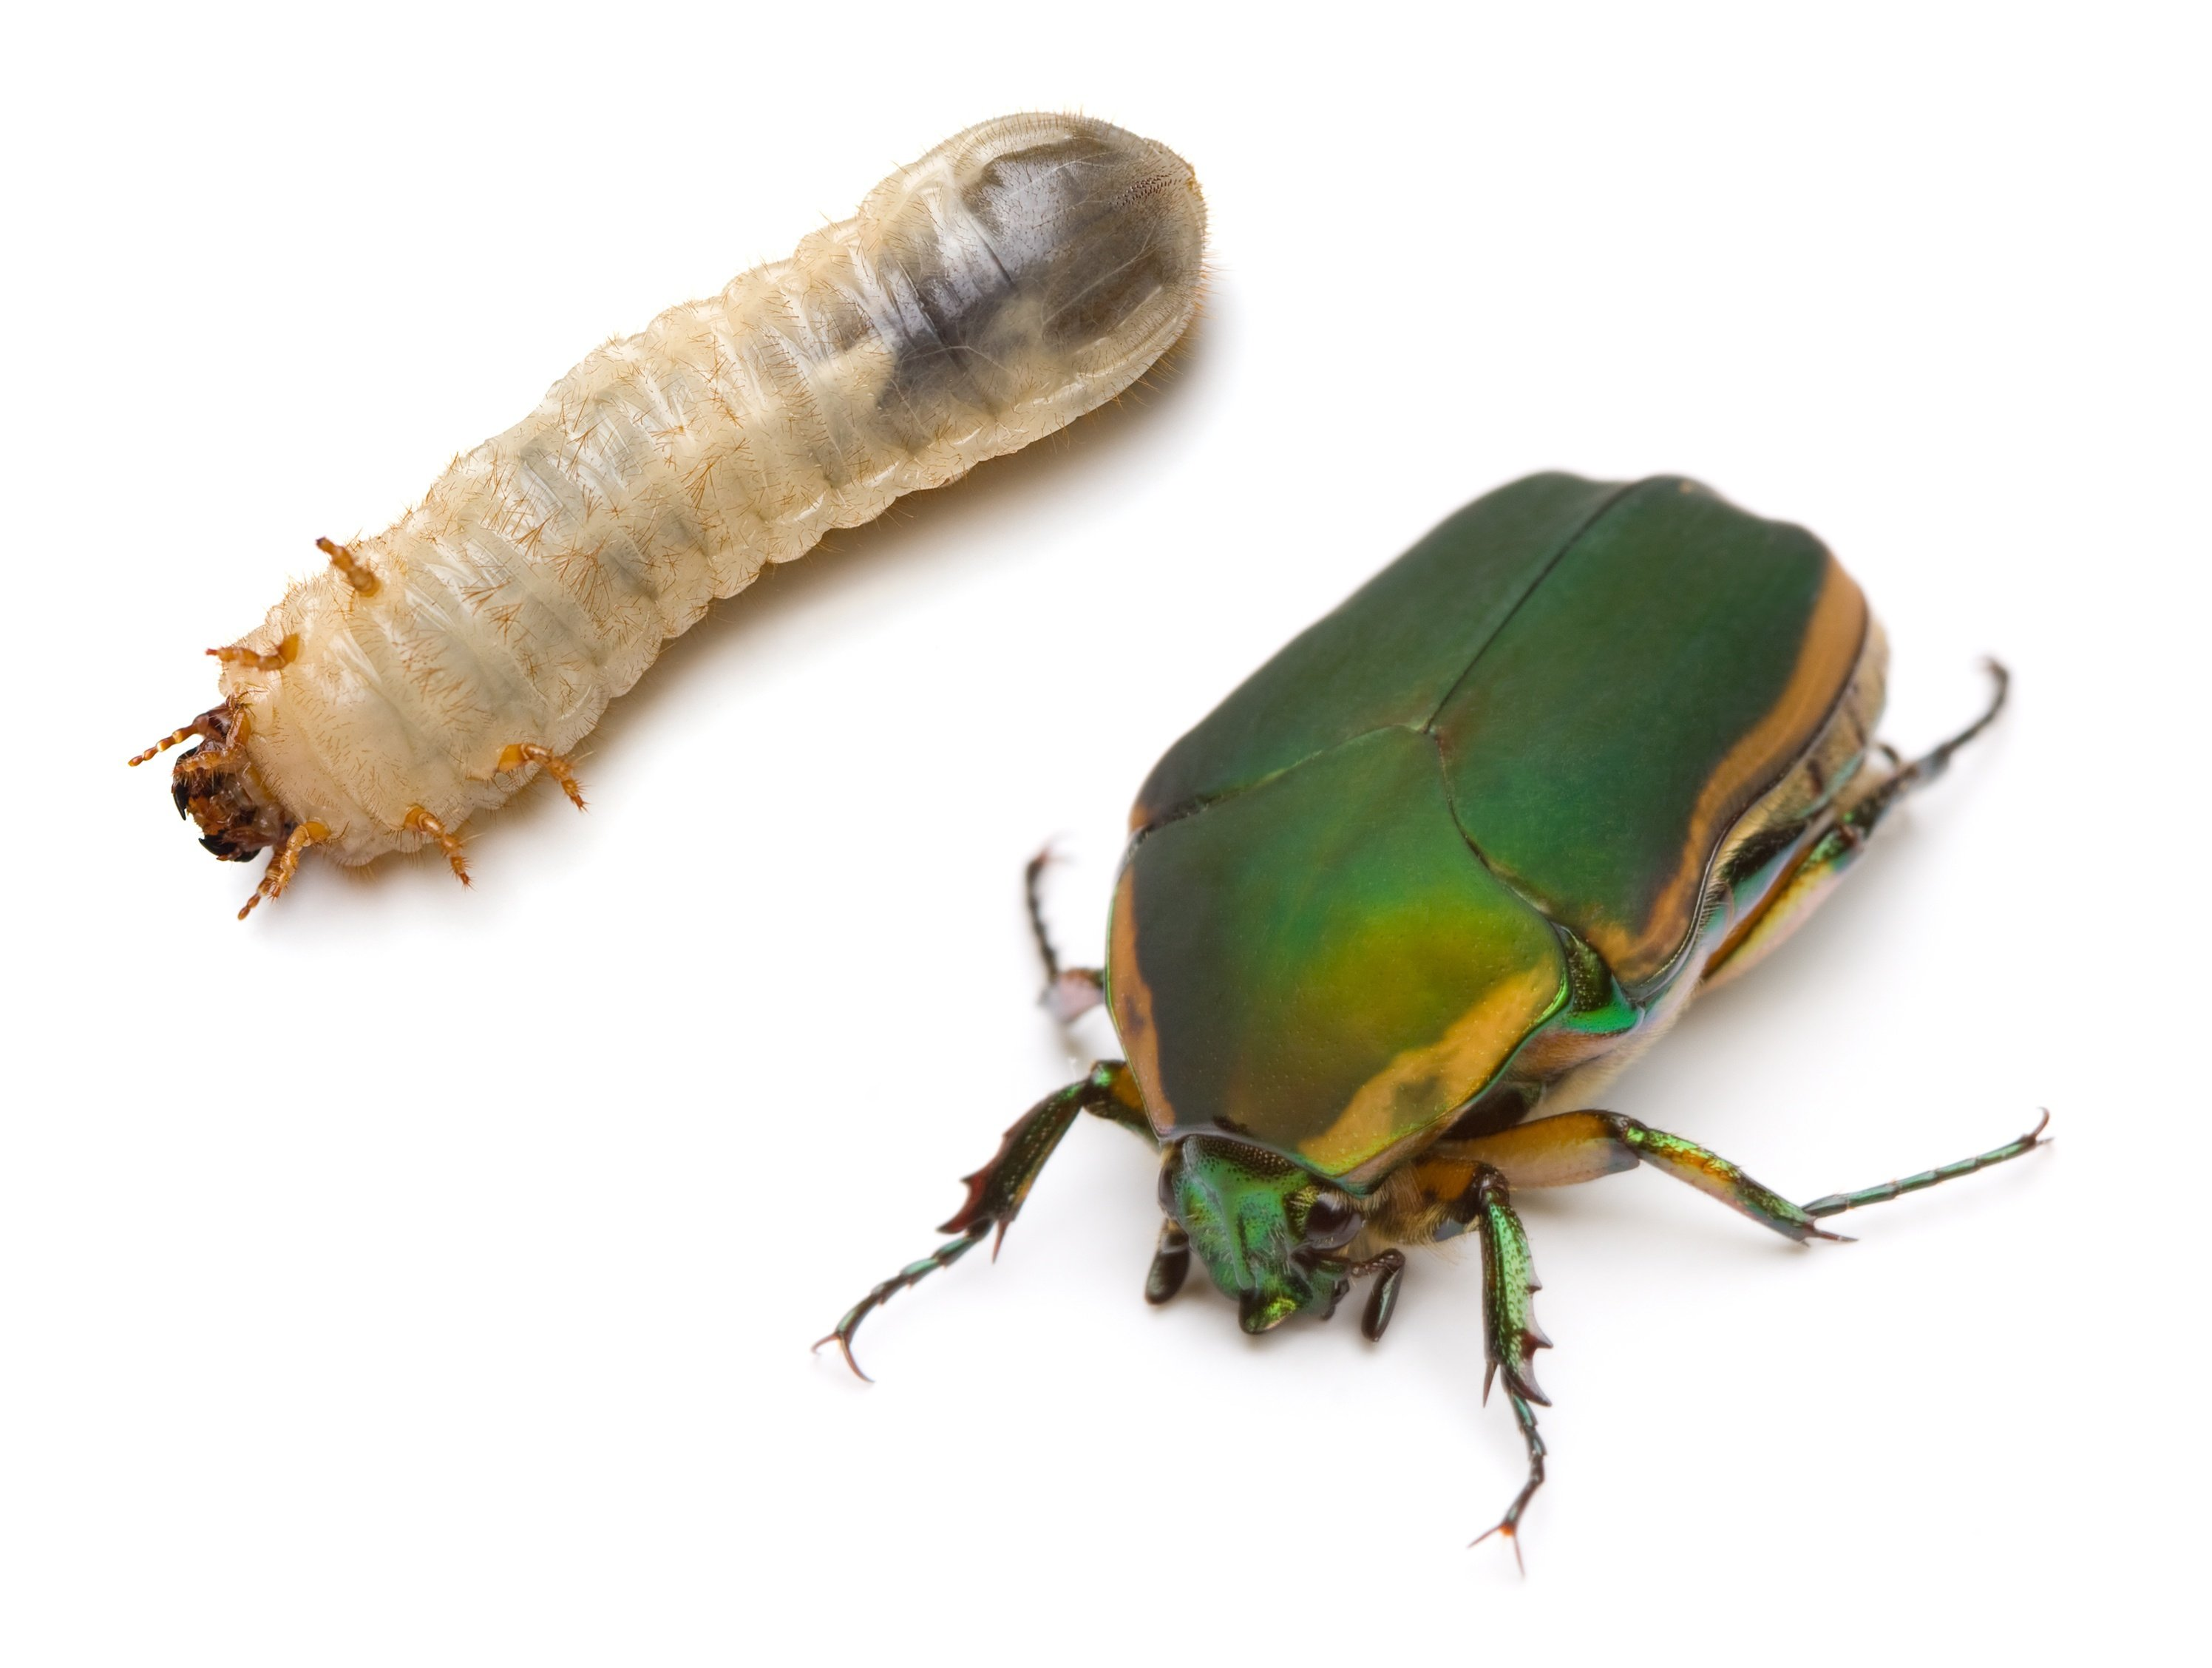 green-june-beetle-grub.jpg